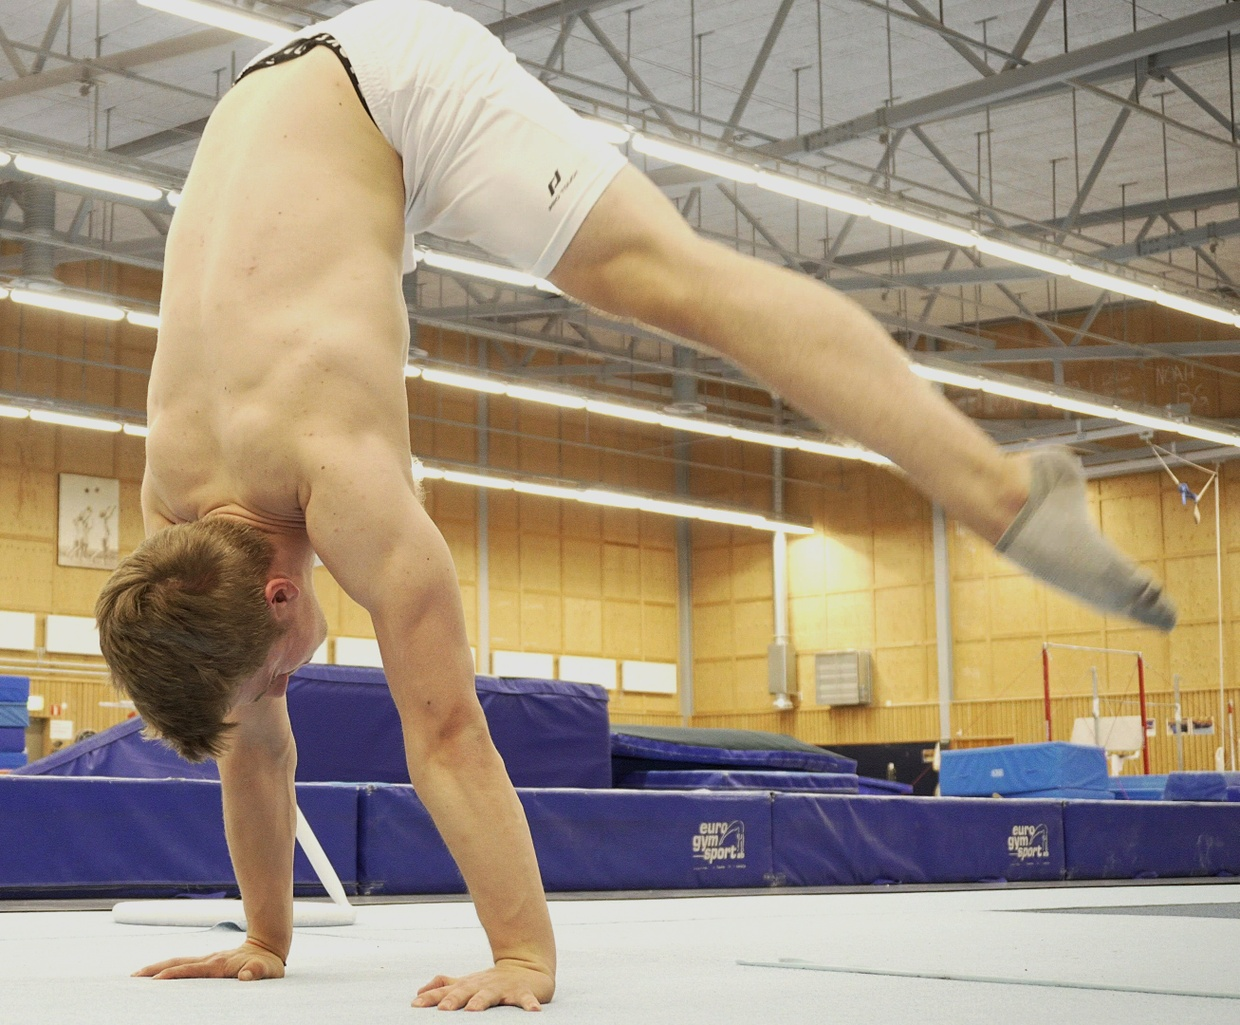 Master the Press handstand